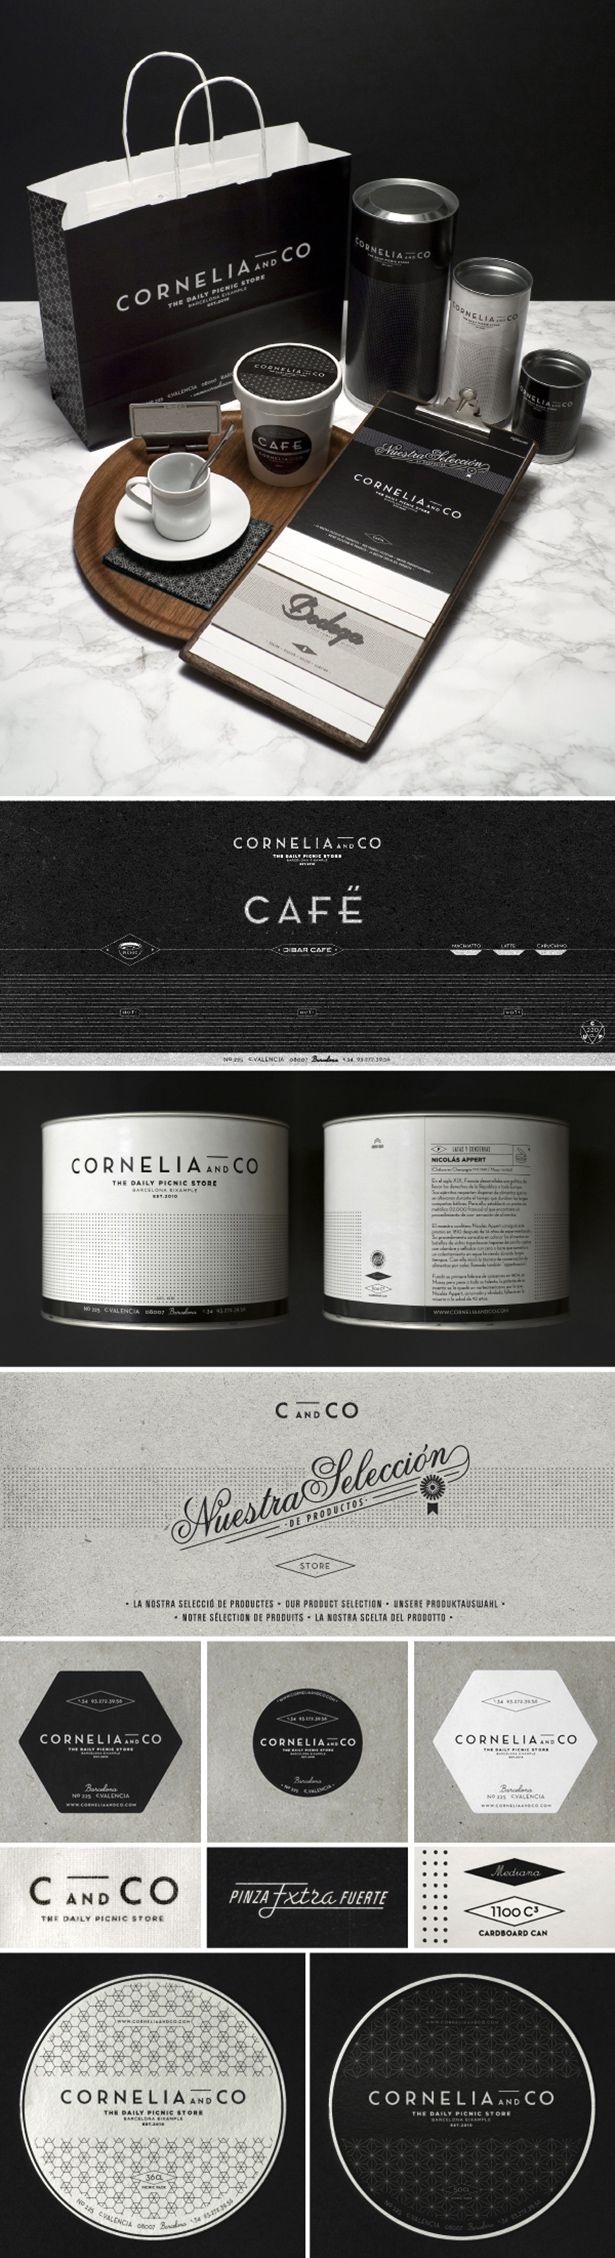 Cornelia and Co Barcelona Daily Picnic Store Branding Packaging via www.mstetson.com